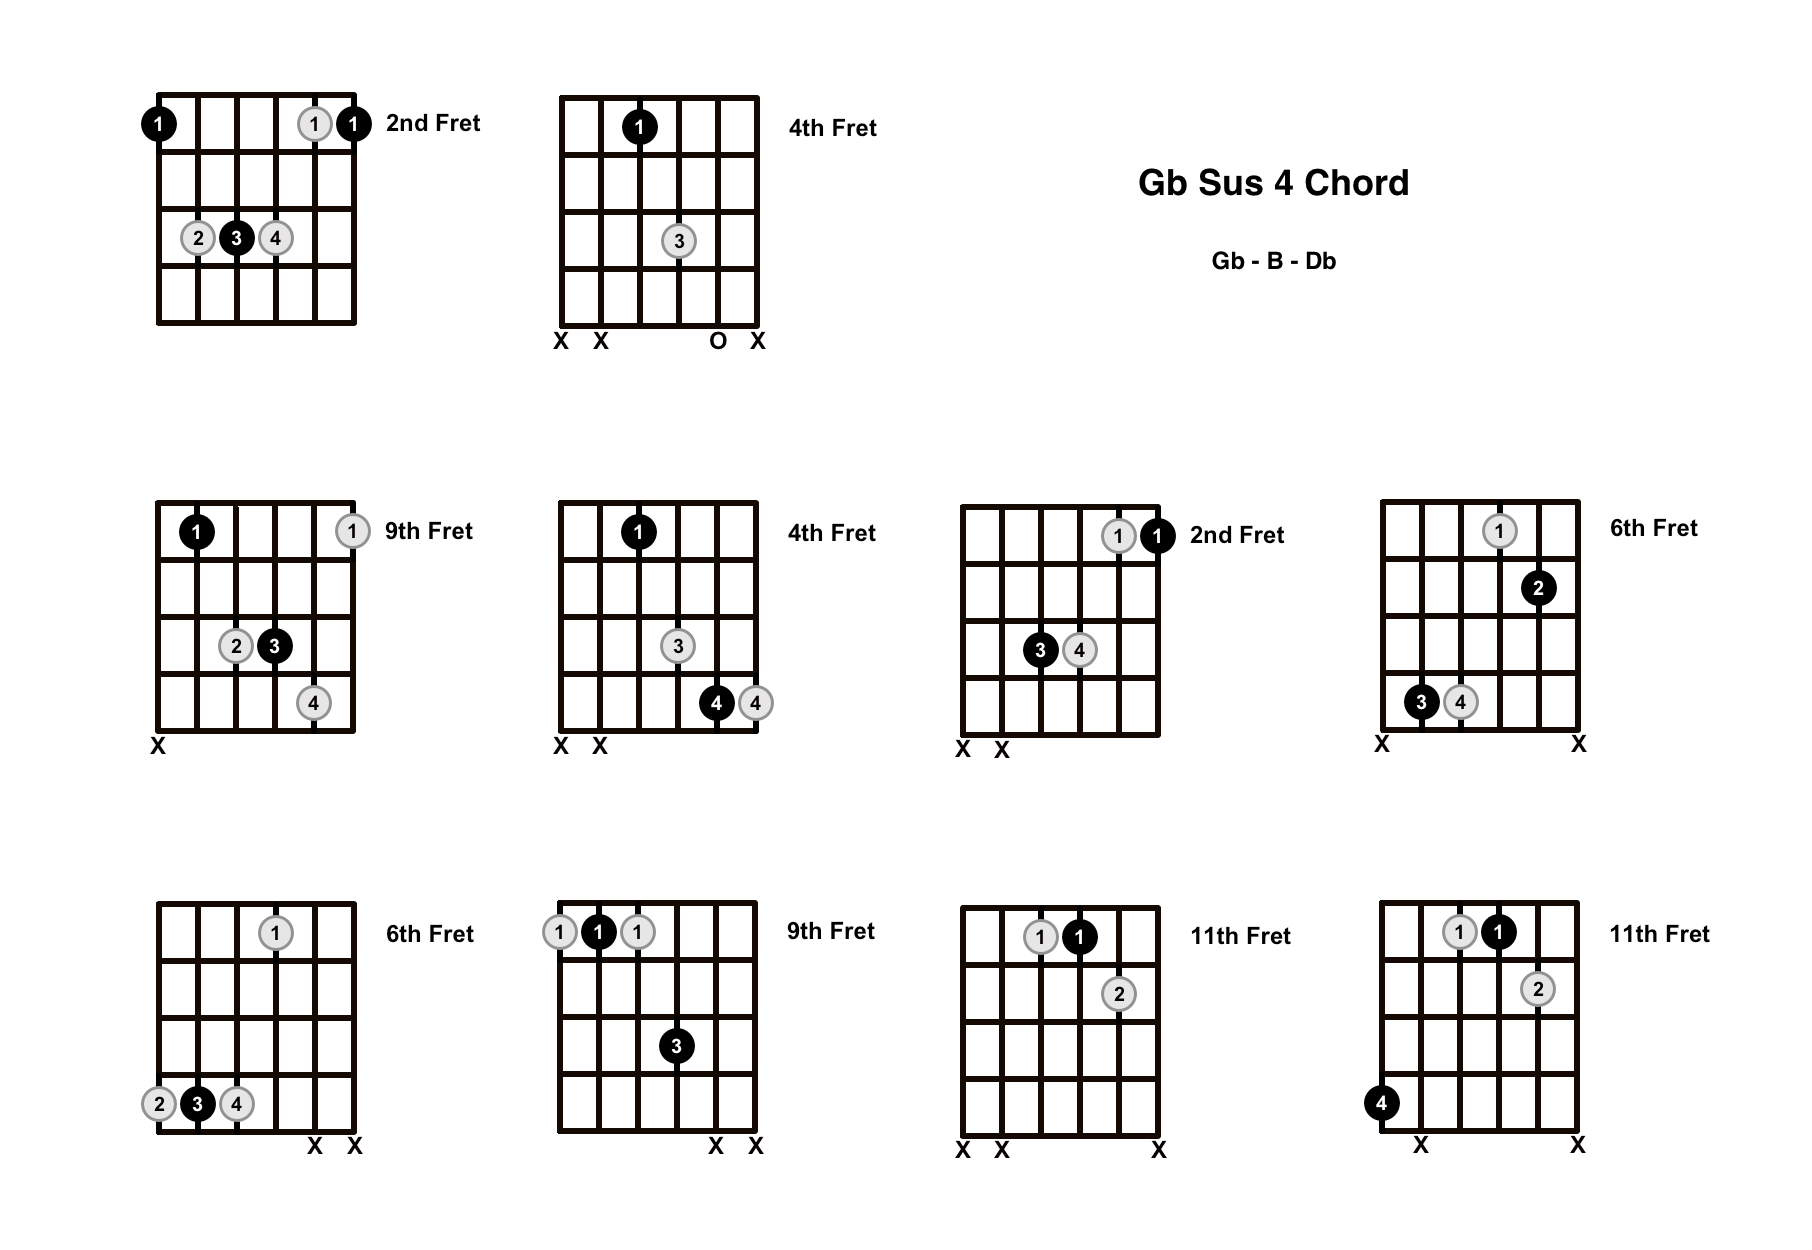 Gb Sus 4 Chord On The Guitar (G Flat Suspended 4) – Diagrams, Finger Positions and Theory